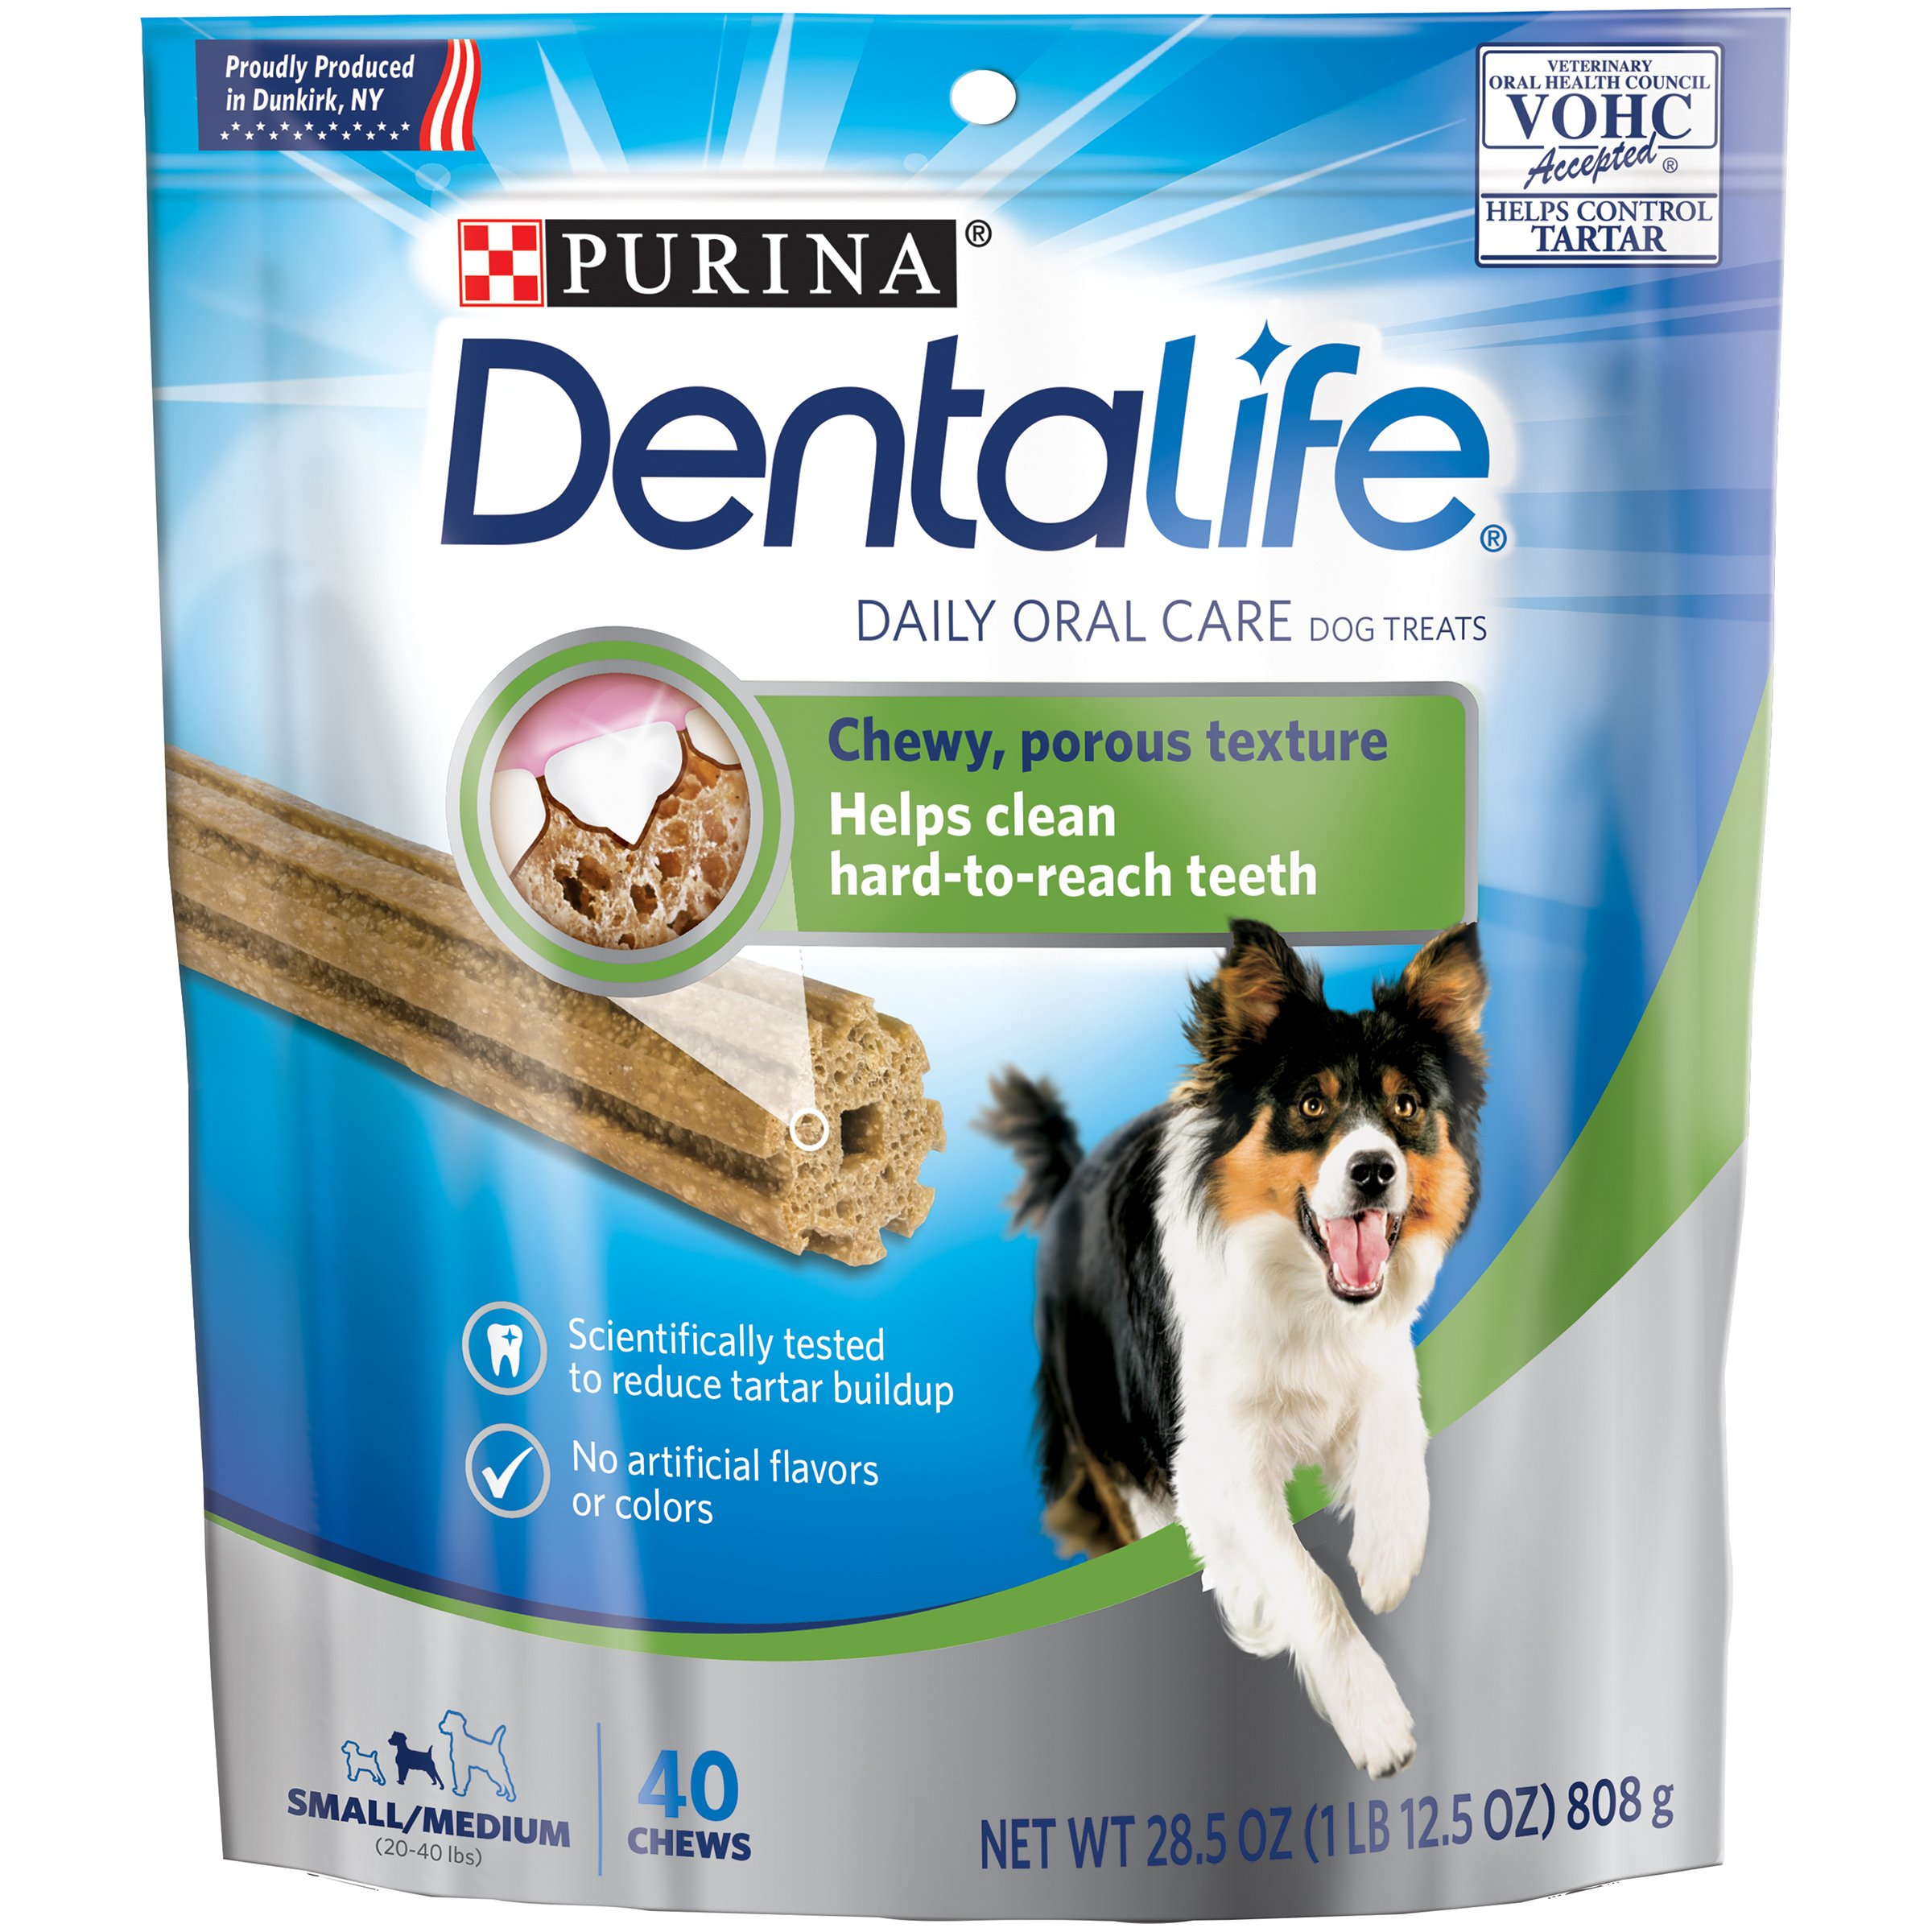 Purina DentaLife Daily Oral Care Small/Medium Adult Dog Treats - (1) 28.5 oz, 40 ct. Pouch